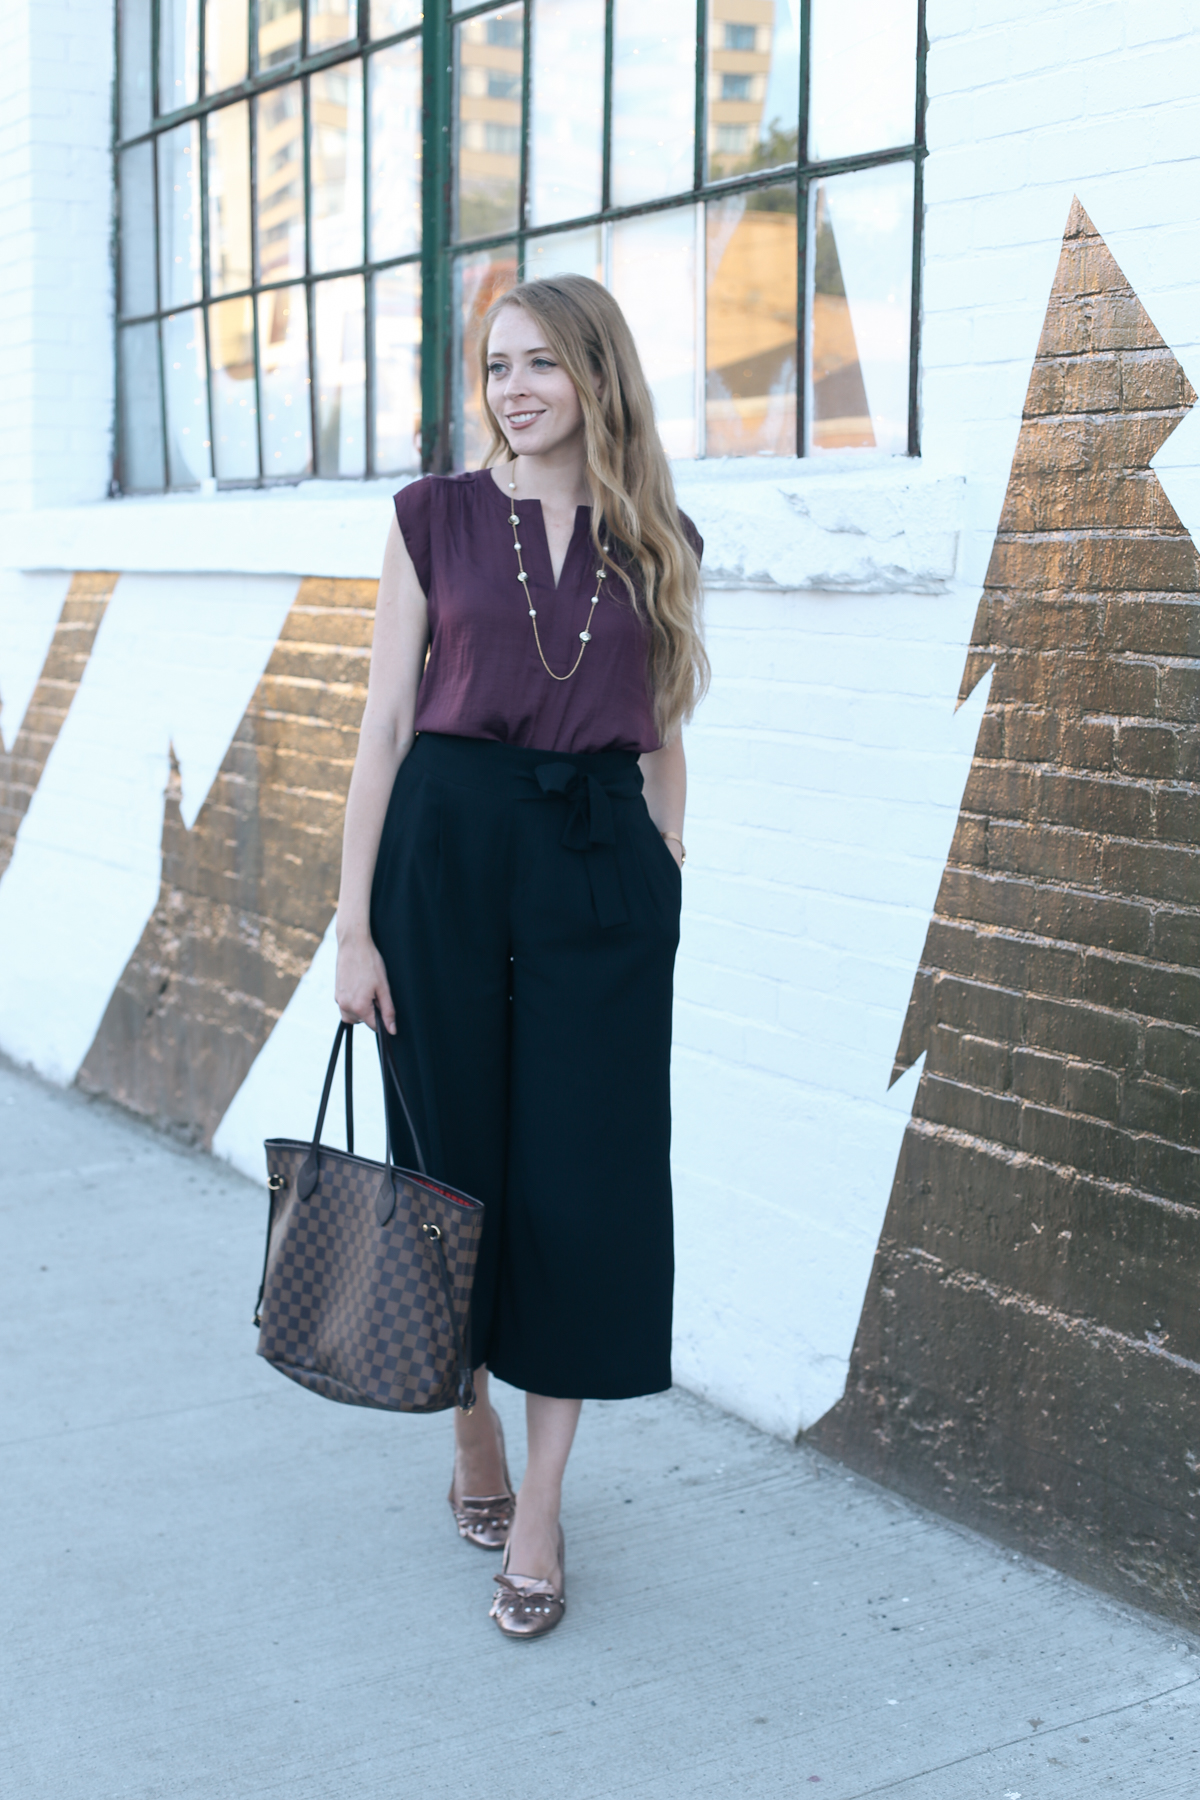 casual friday outfit ideas lv neverfull (1 of 4)